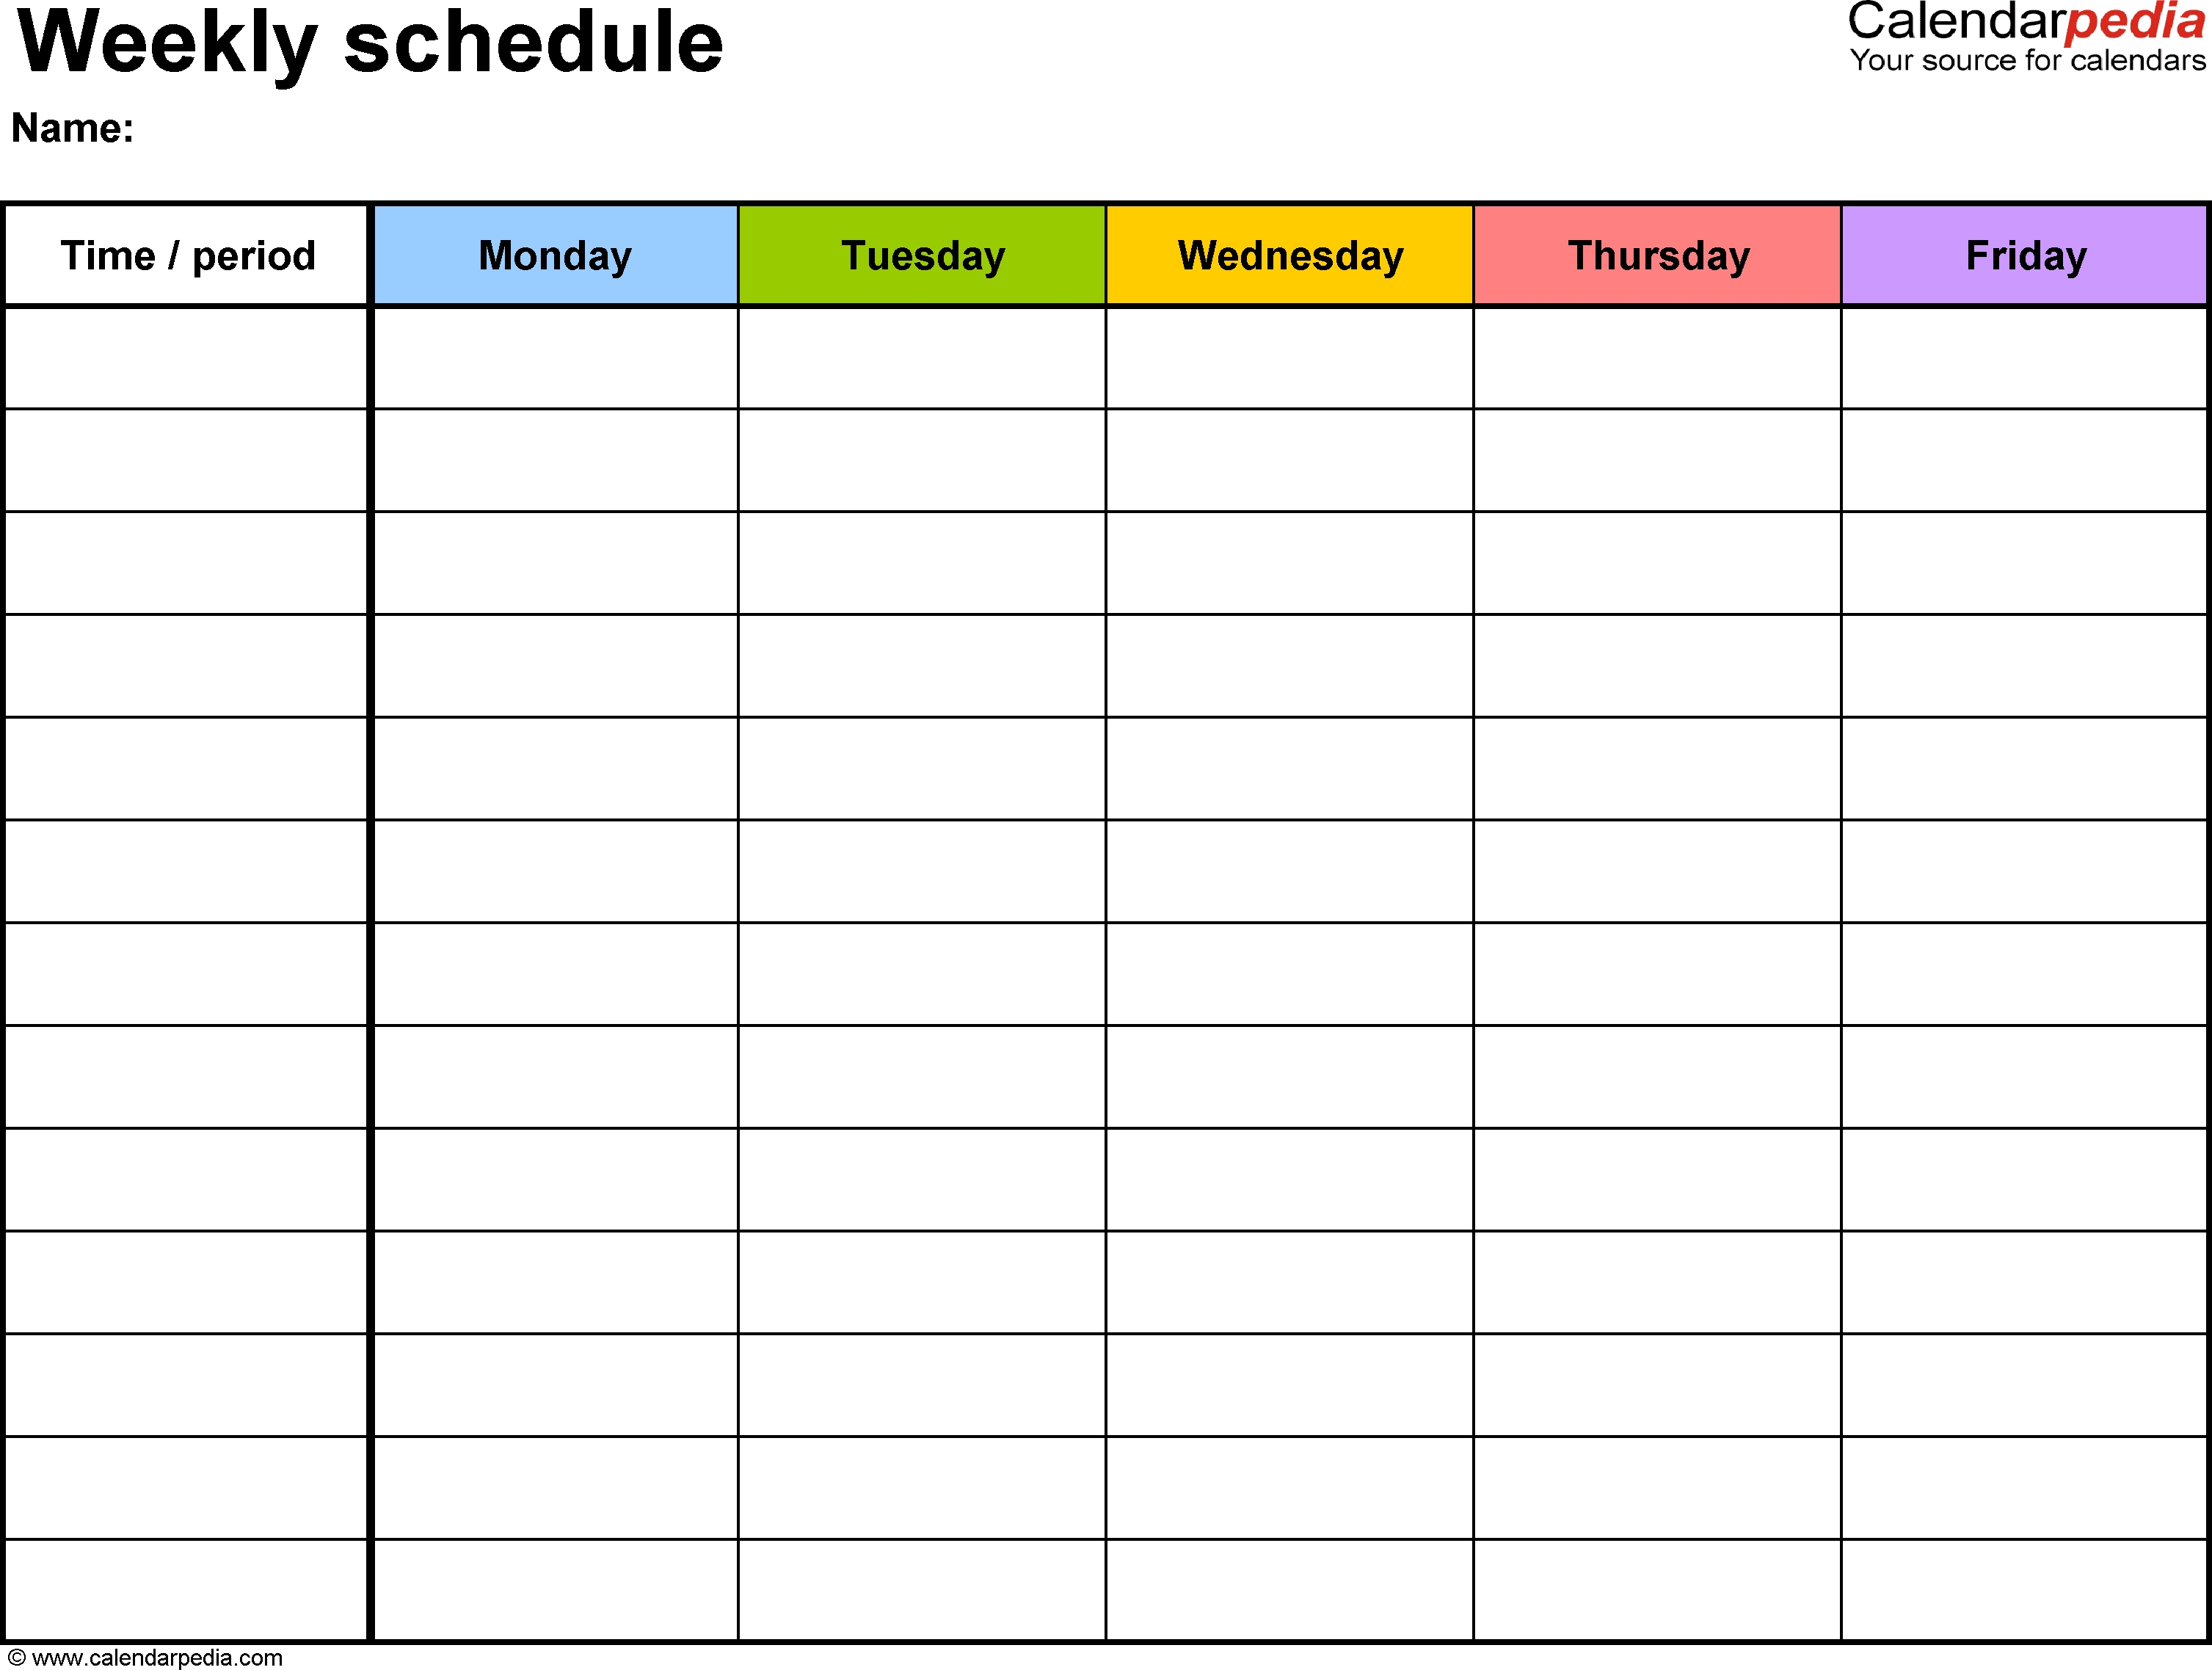 Weekly Schedule Template For Word Version 1: Landscape, 1 Free Calendar Weekly Template